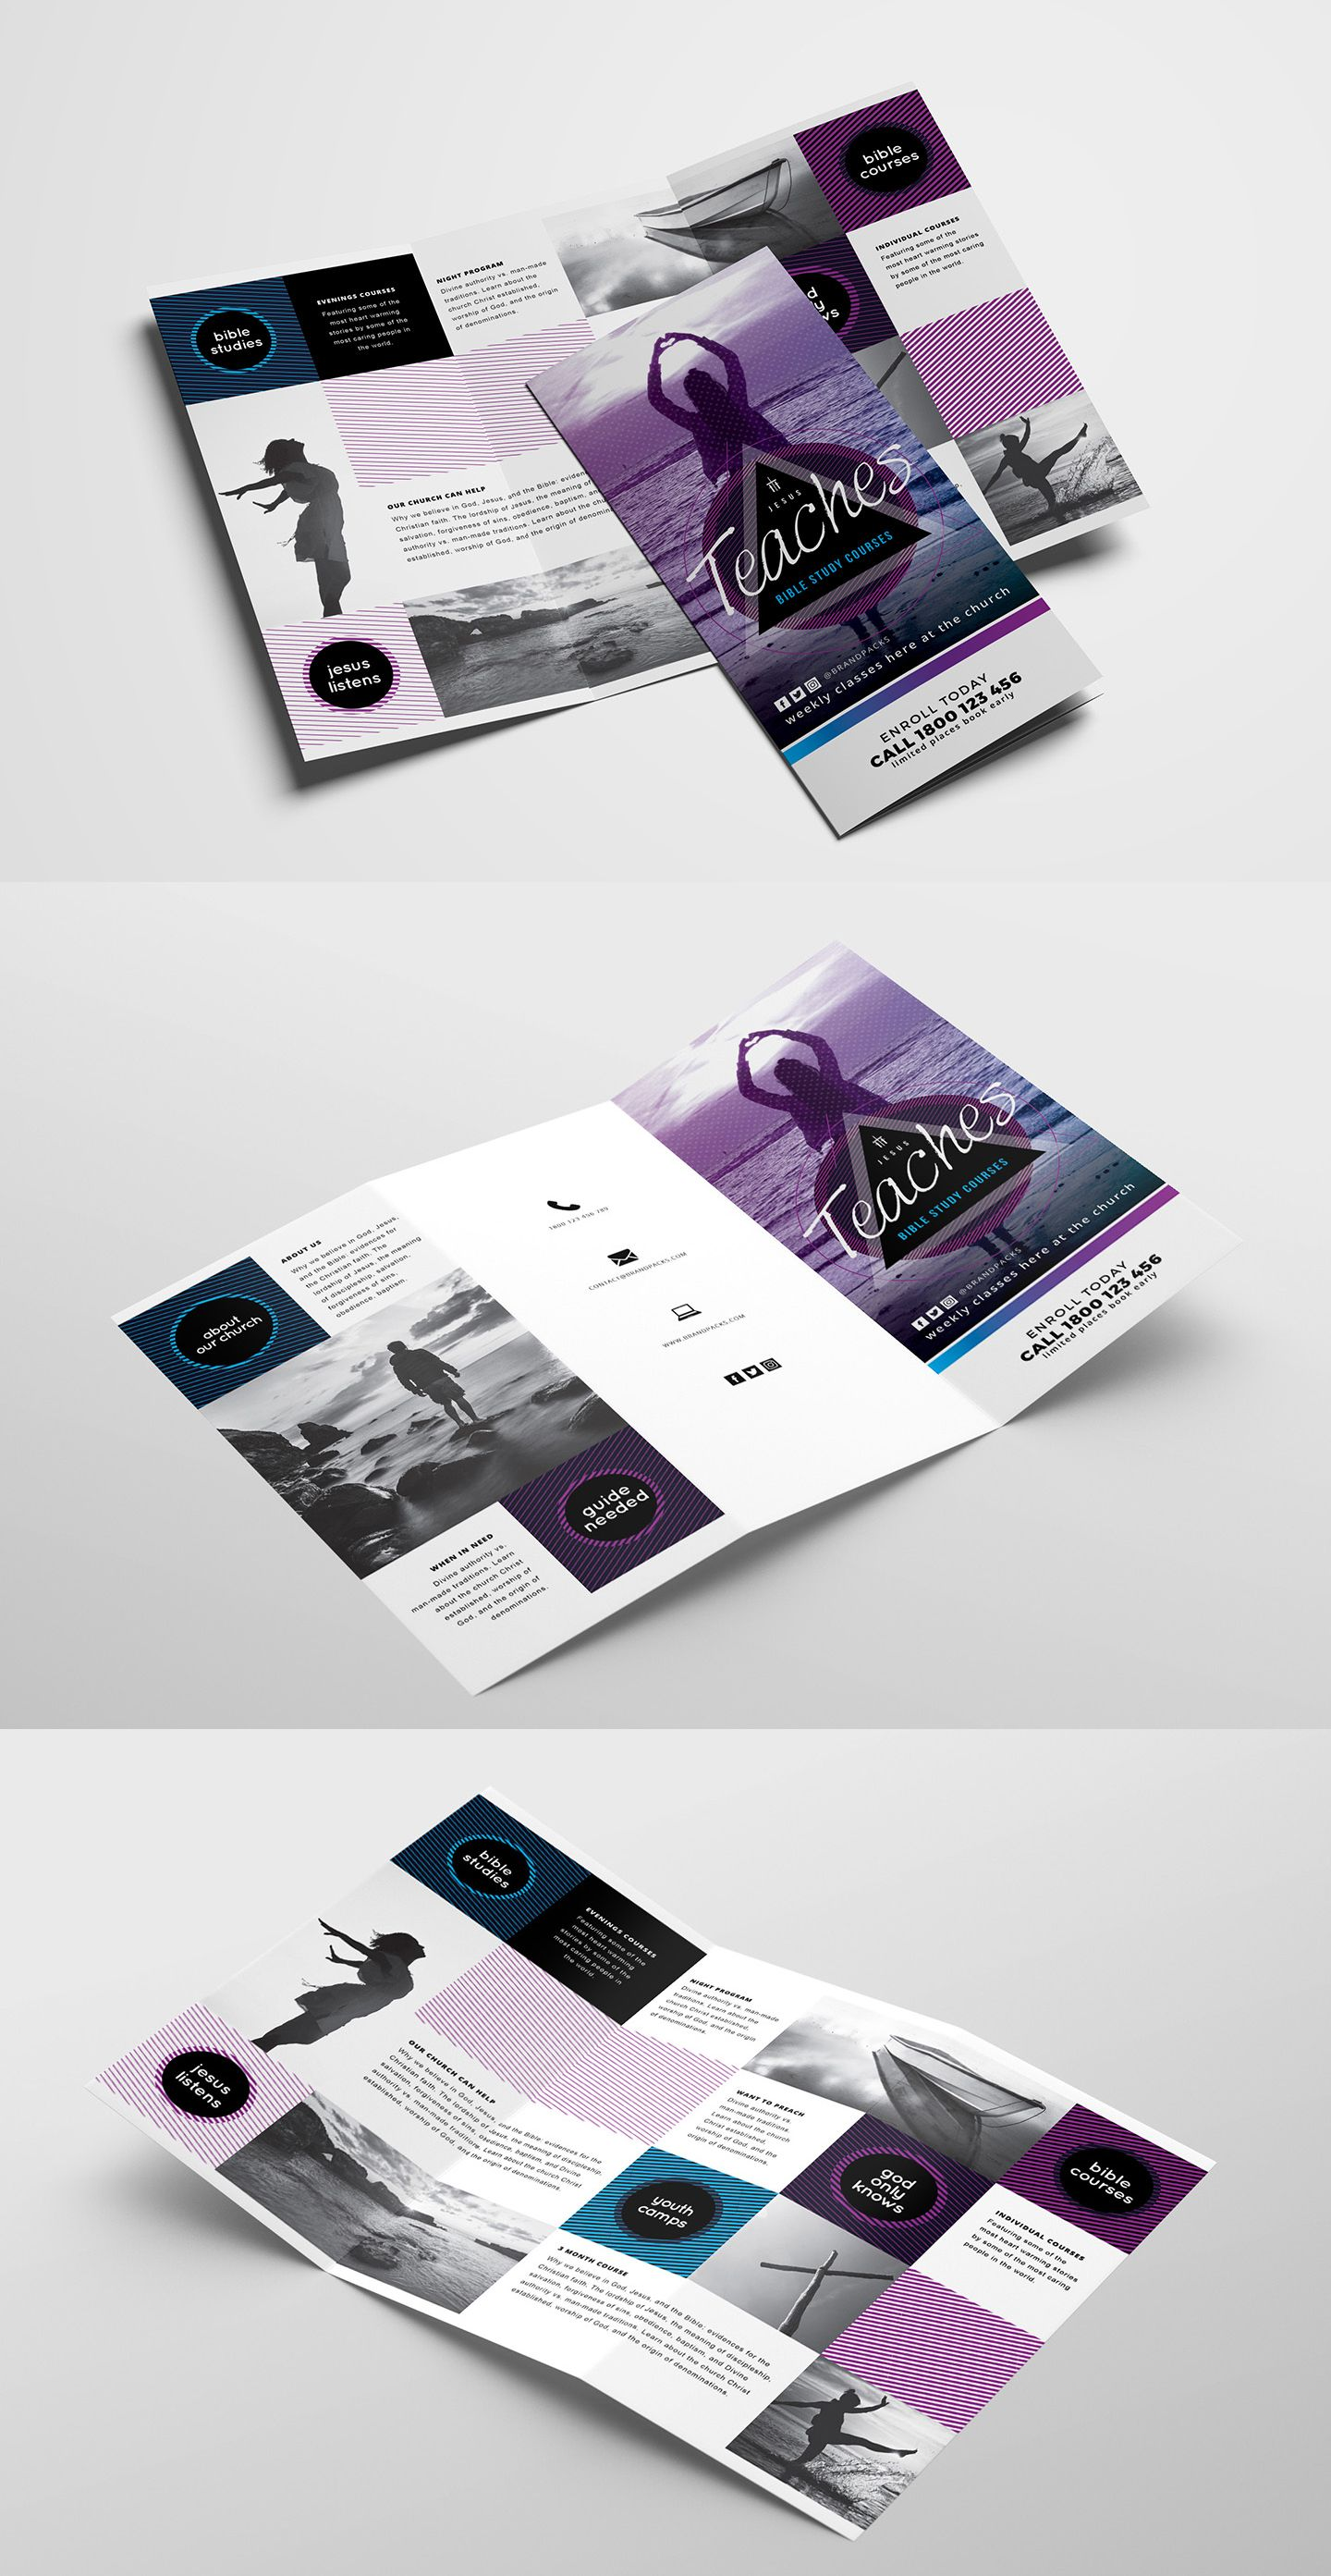 Free Church TriFold Brochure Template For Photoshop Illustrator - Free church brochure templates